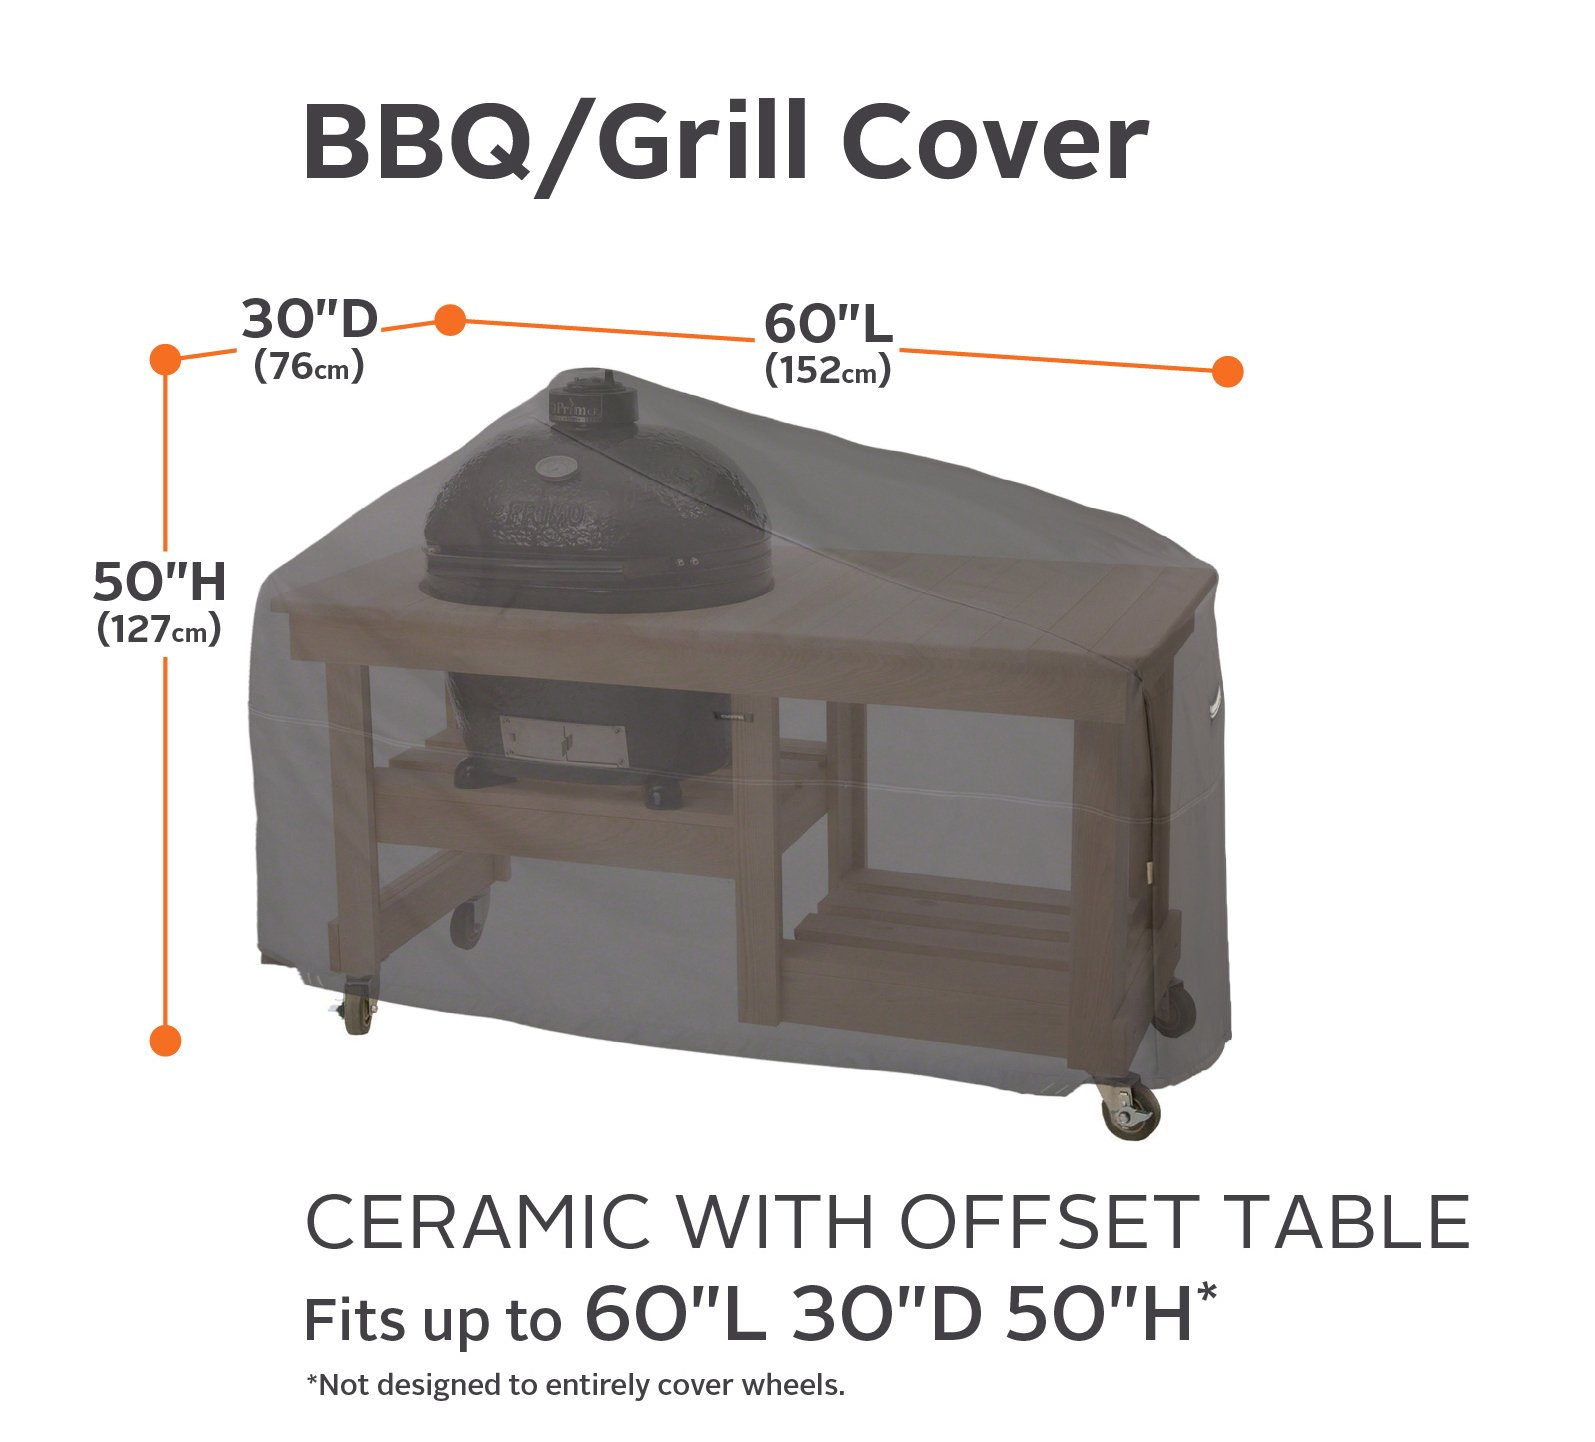 Classic Accessories Ravenna Kamado Ceramic Grill with Offset Table Cover - Premium Outdoor Grill Cover with Durable and Water Resistant Fabric (55-420-015101-EC) by Classic Accessories (Image #2)